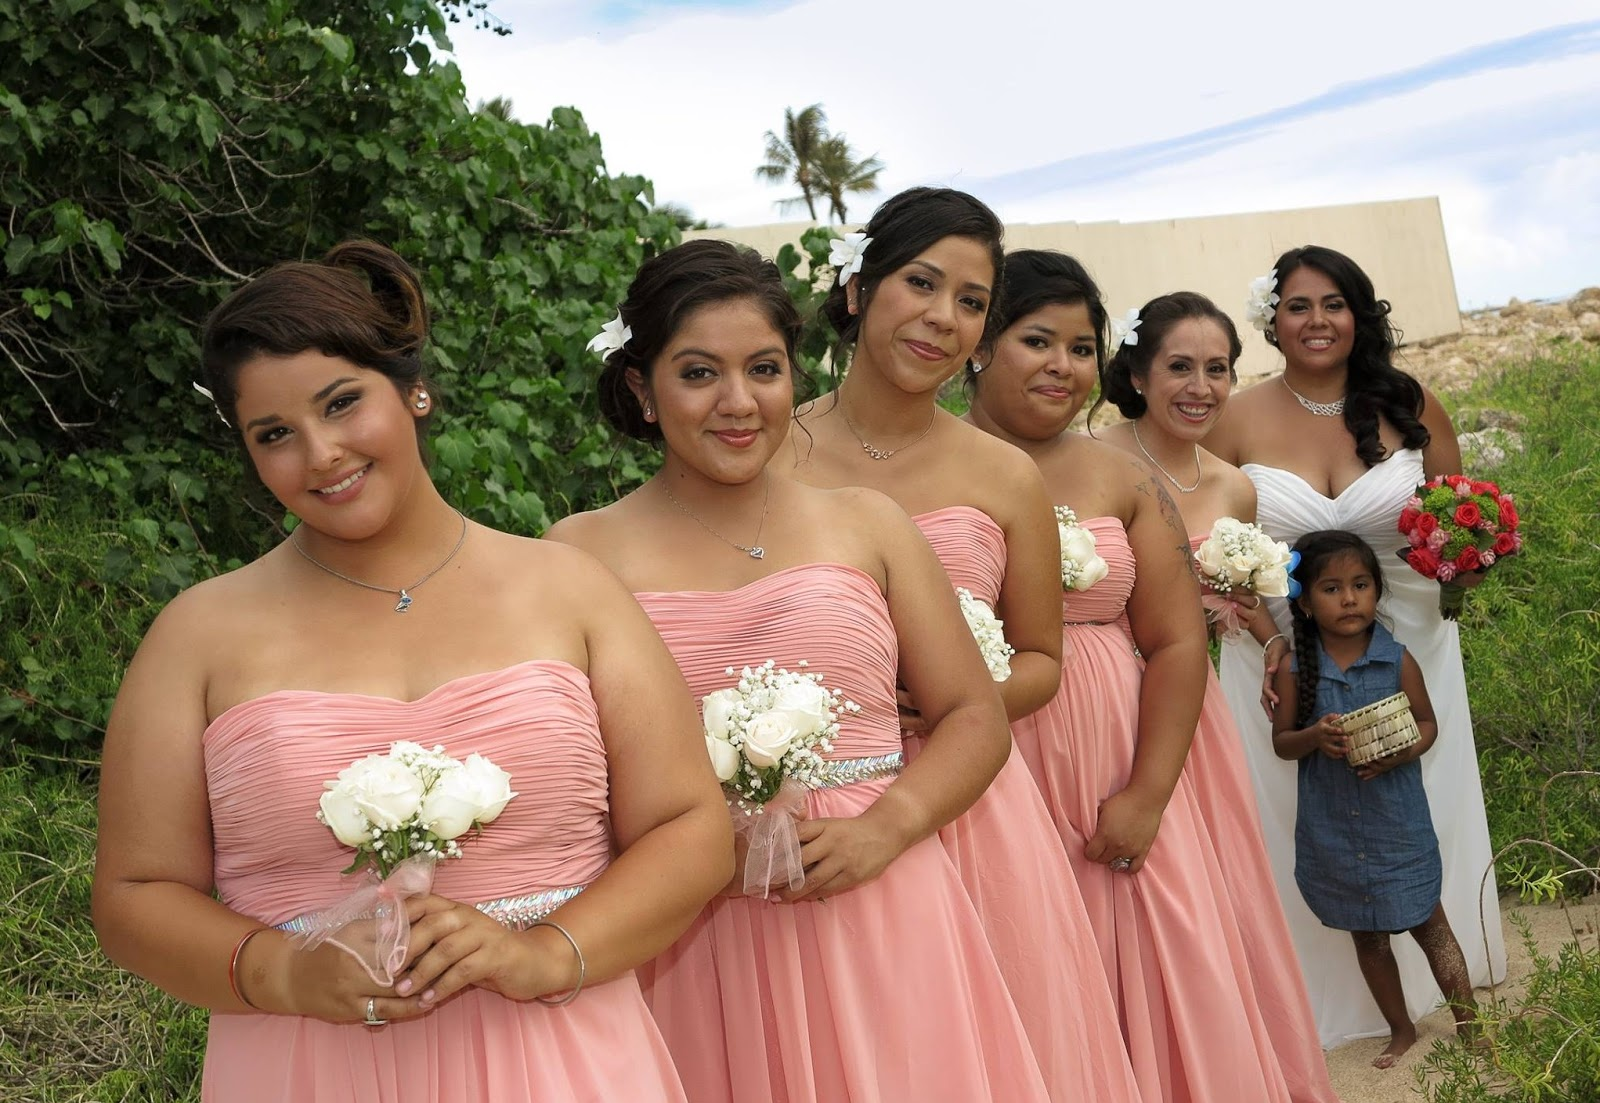 In A Beautiful Hawaii Beach Themed Wedding The Bridesmaids Are Stunning Floor Length Dresses Hues Of Pink And White With Small Bouquet